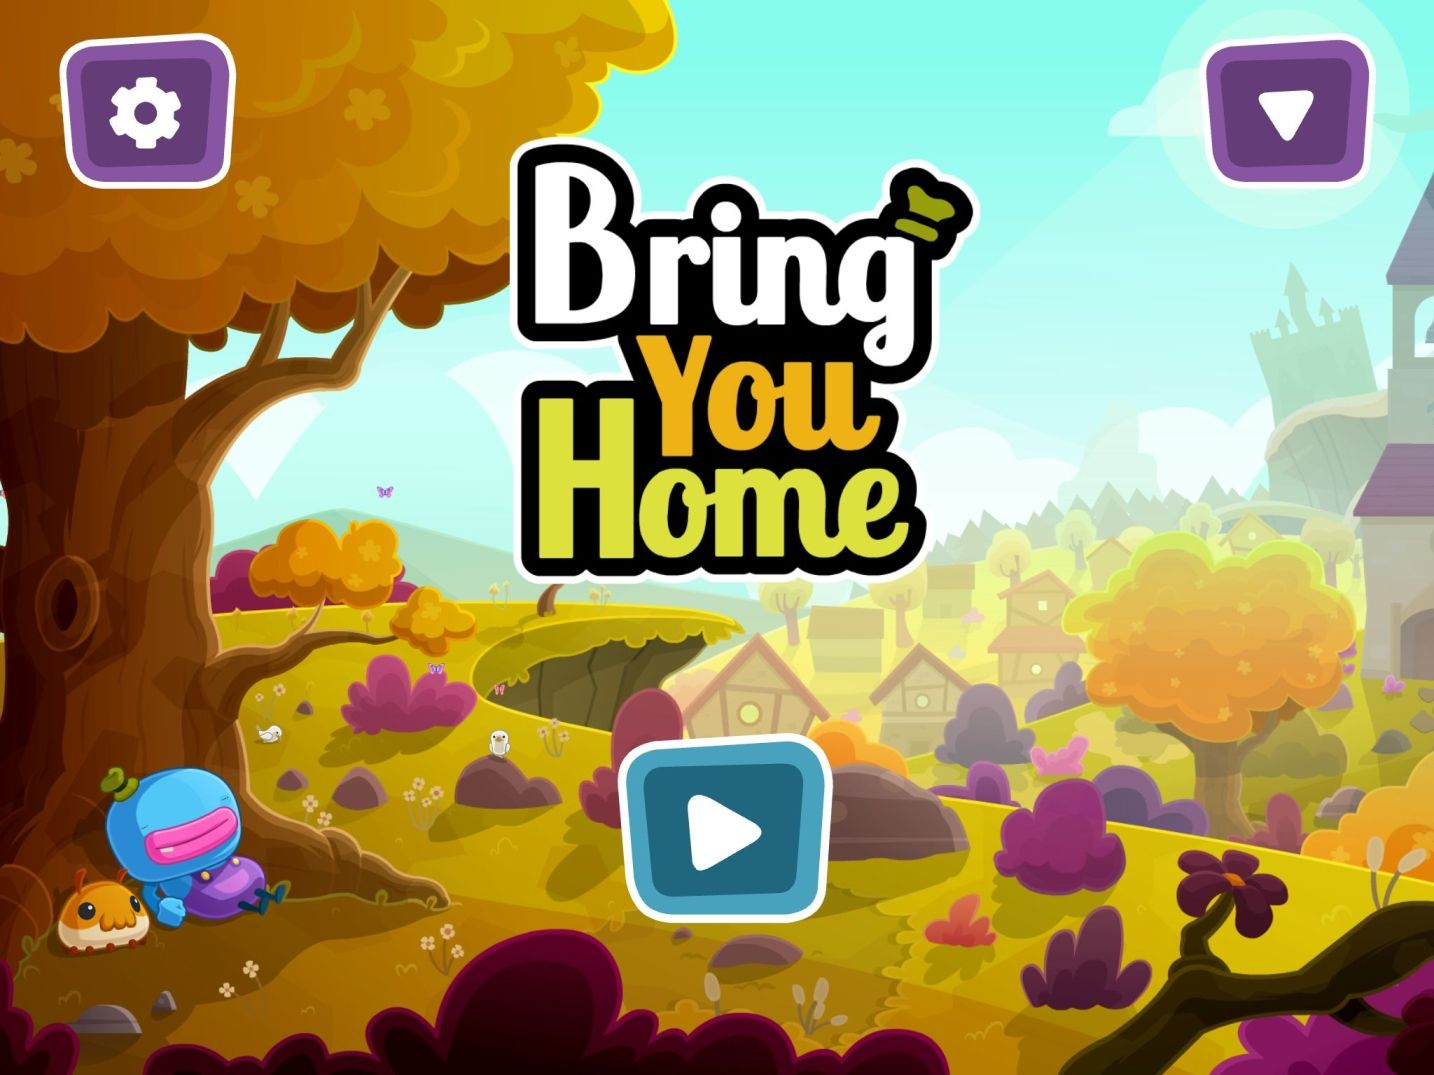 Bring You Home (copie d'écran 1 sur iPhone / iPad / Apple TV)